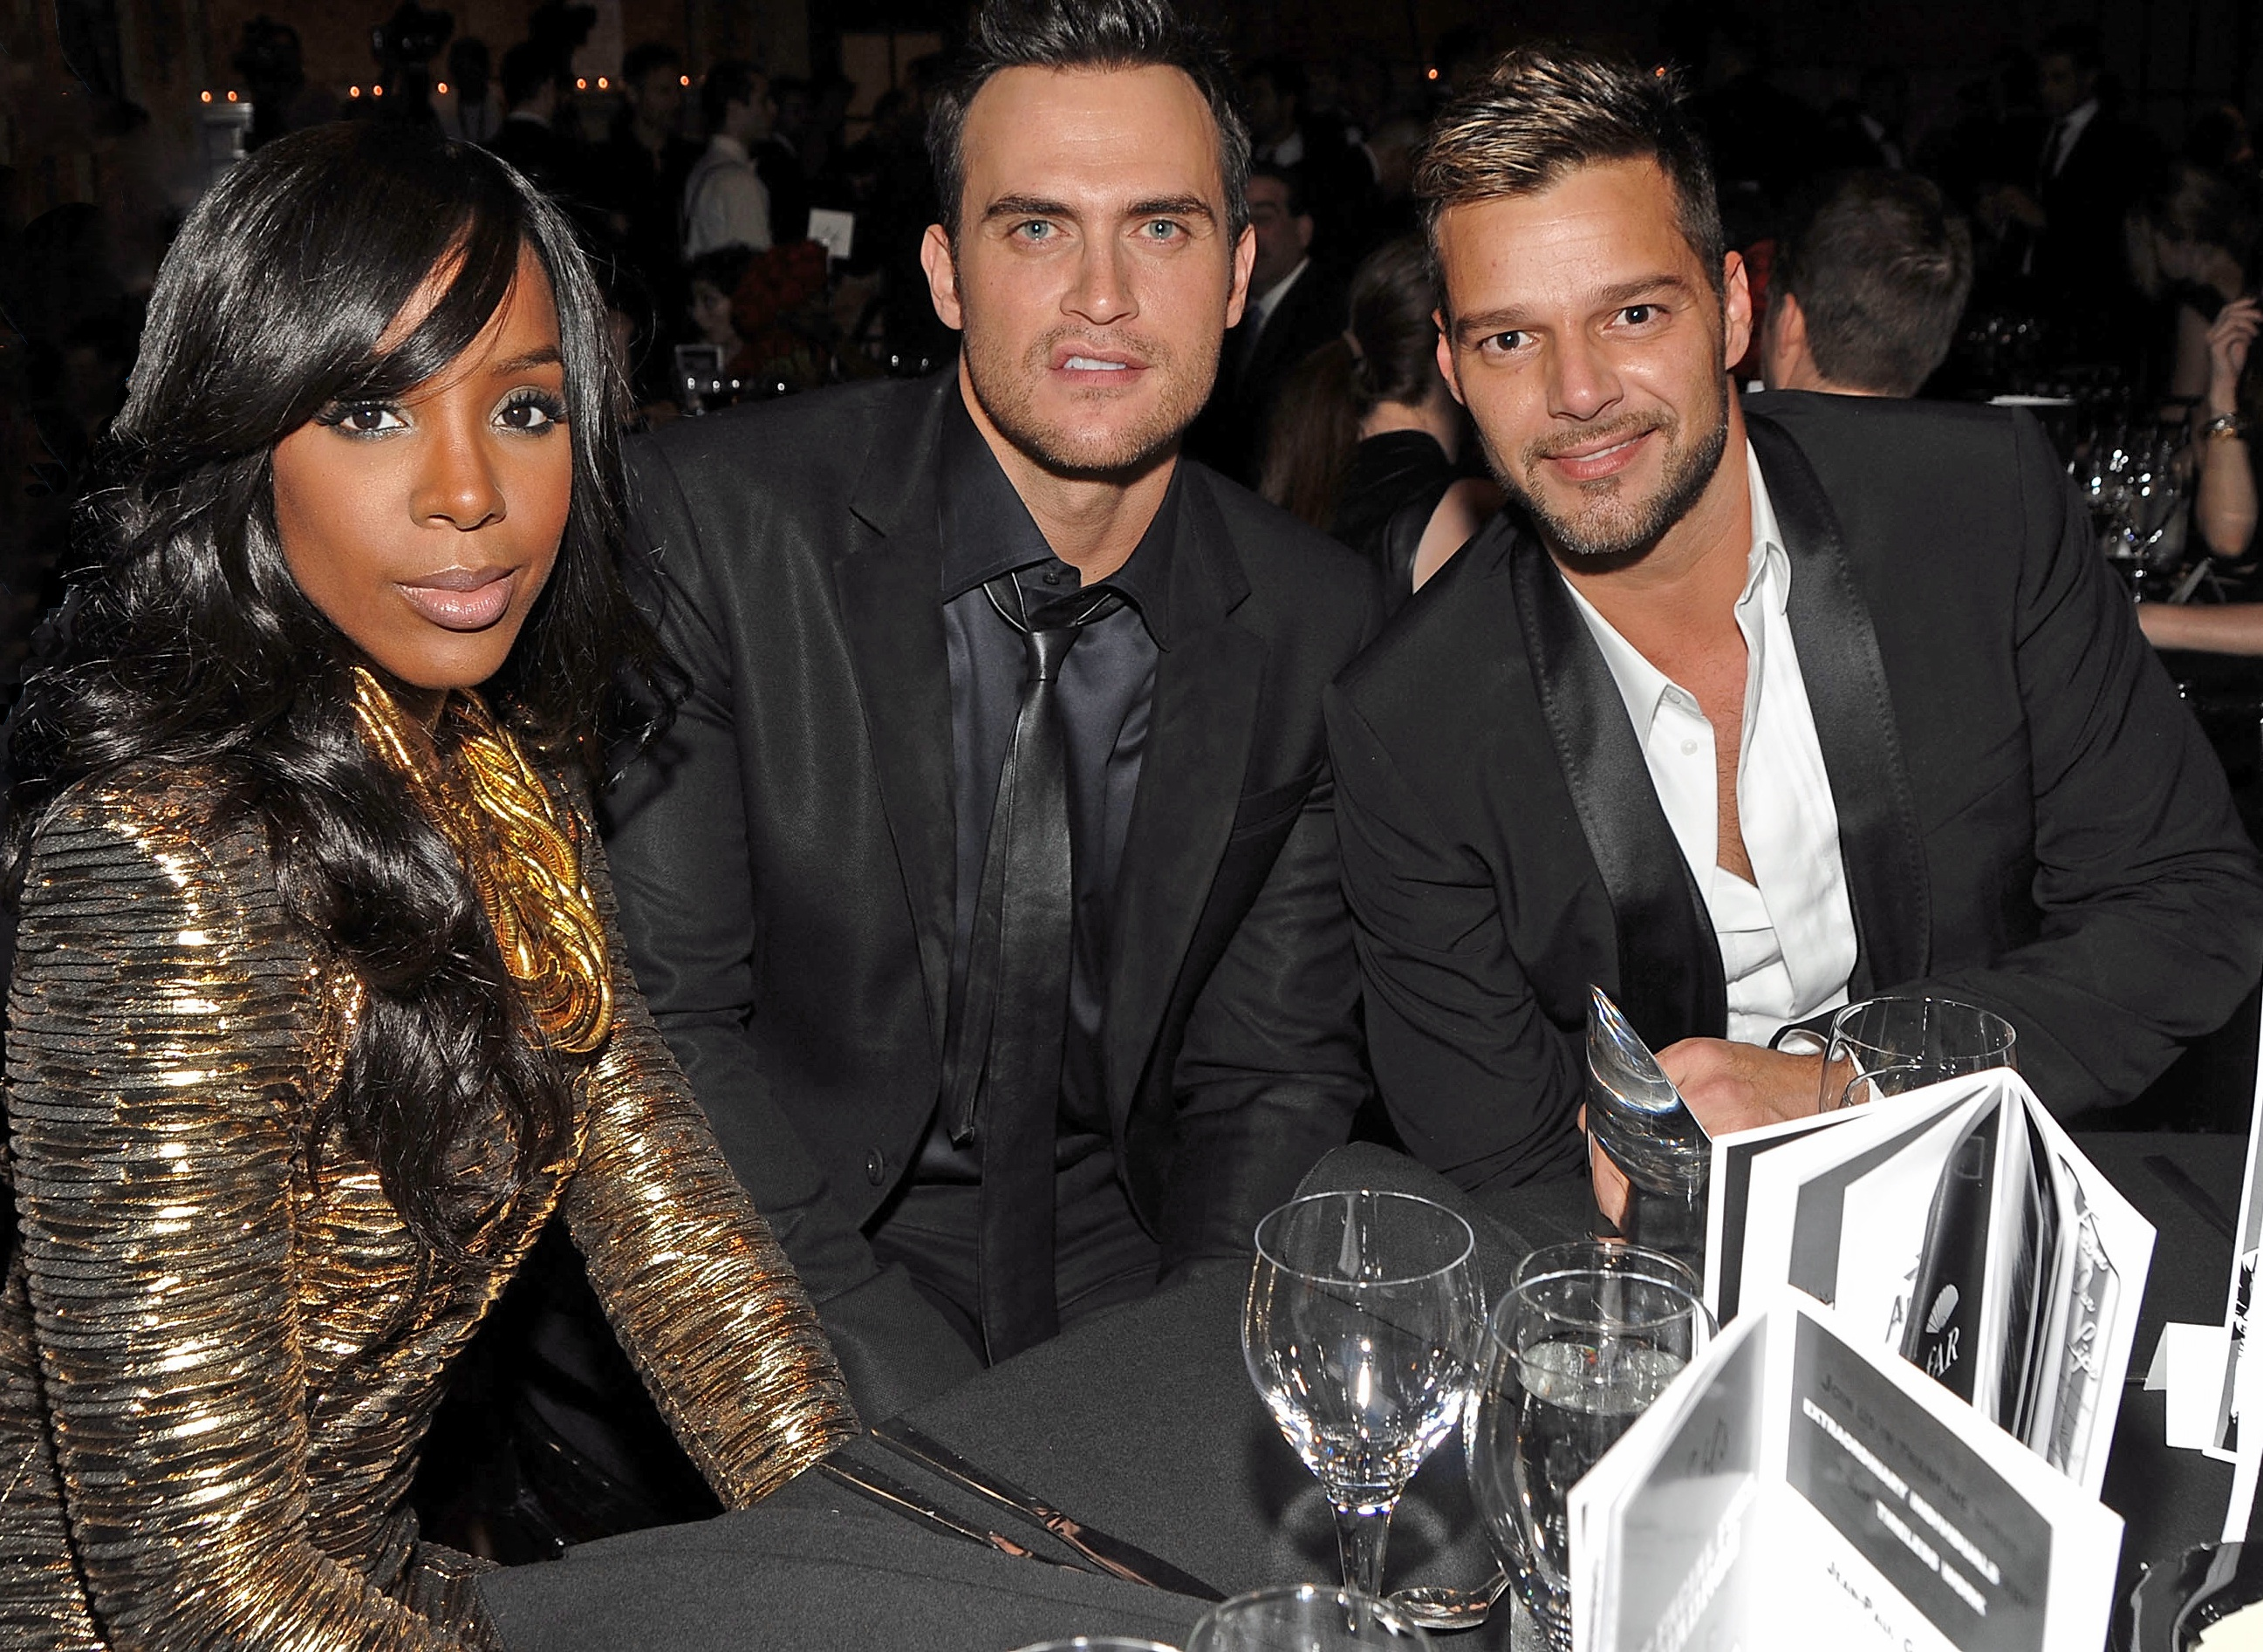 Wherein Ricky Martin's Hand Goes Missing Under Cheyenne Jackson's Table